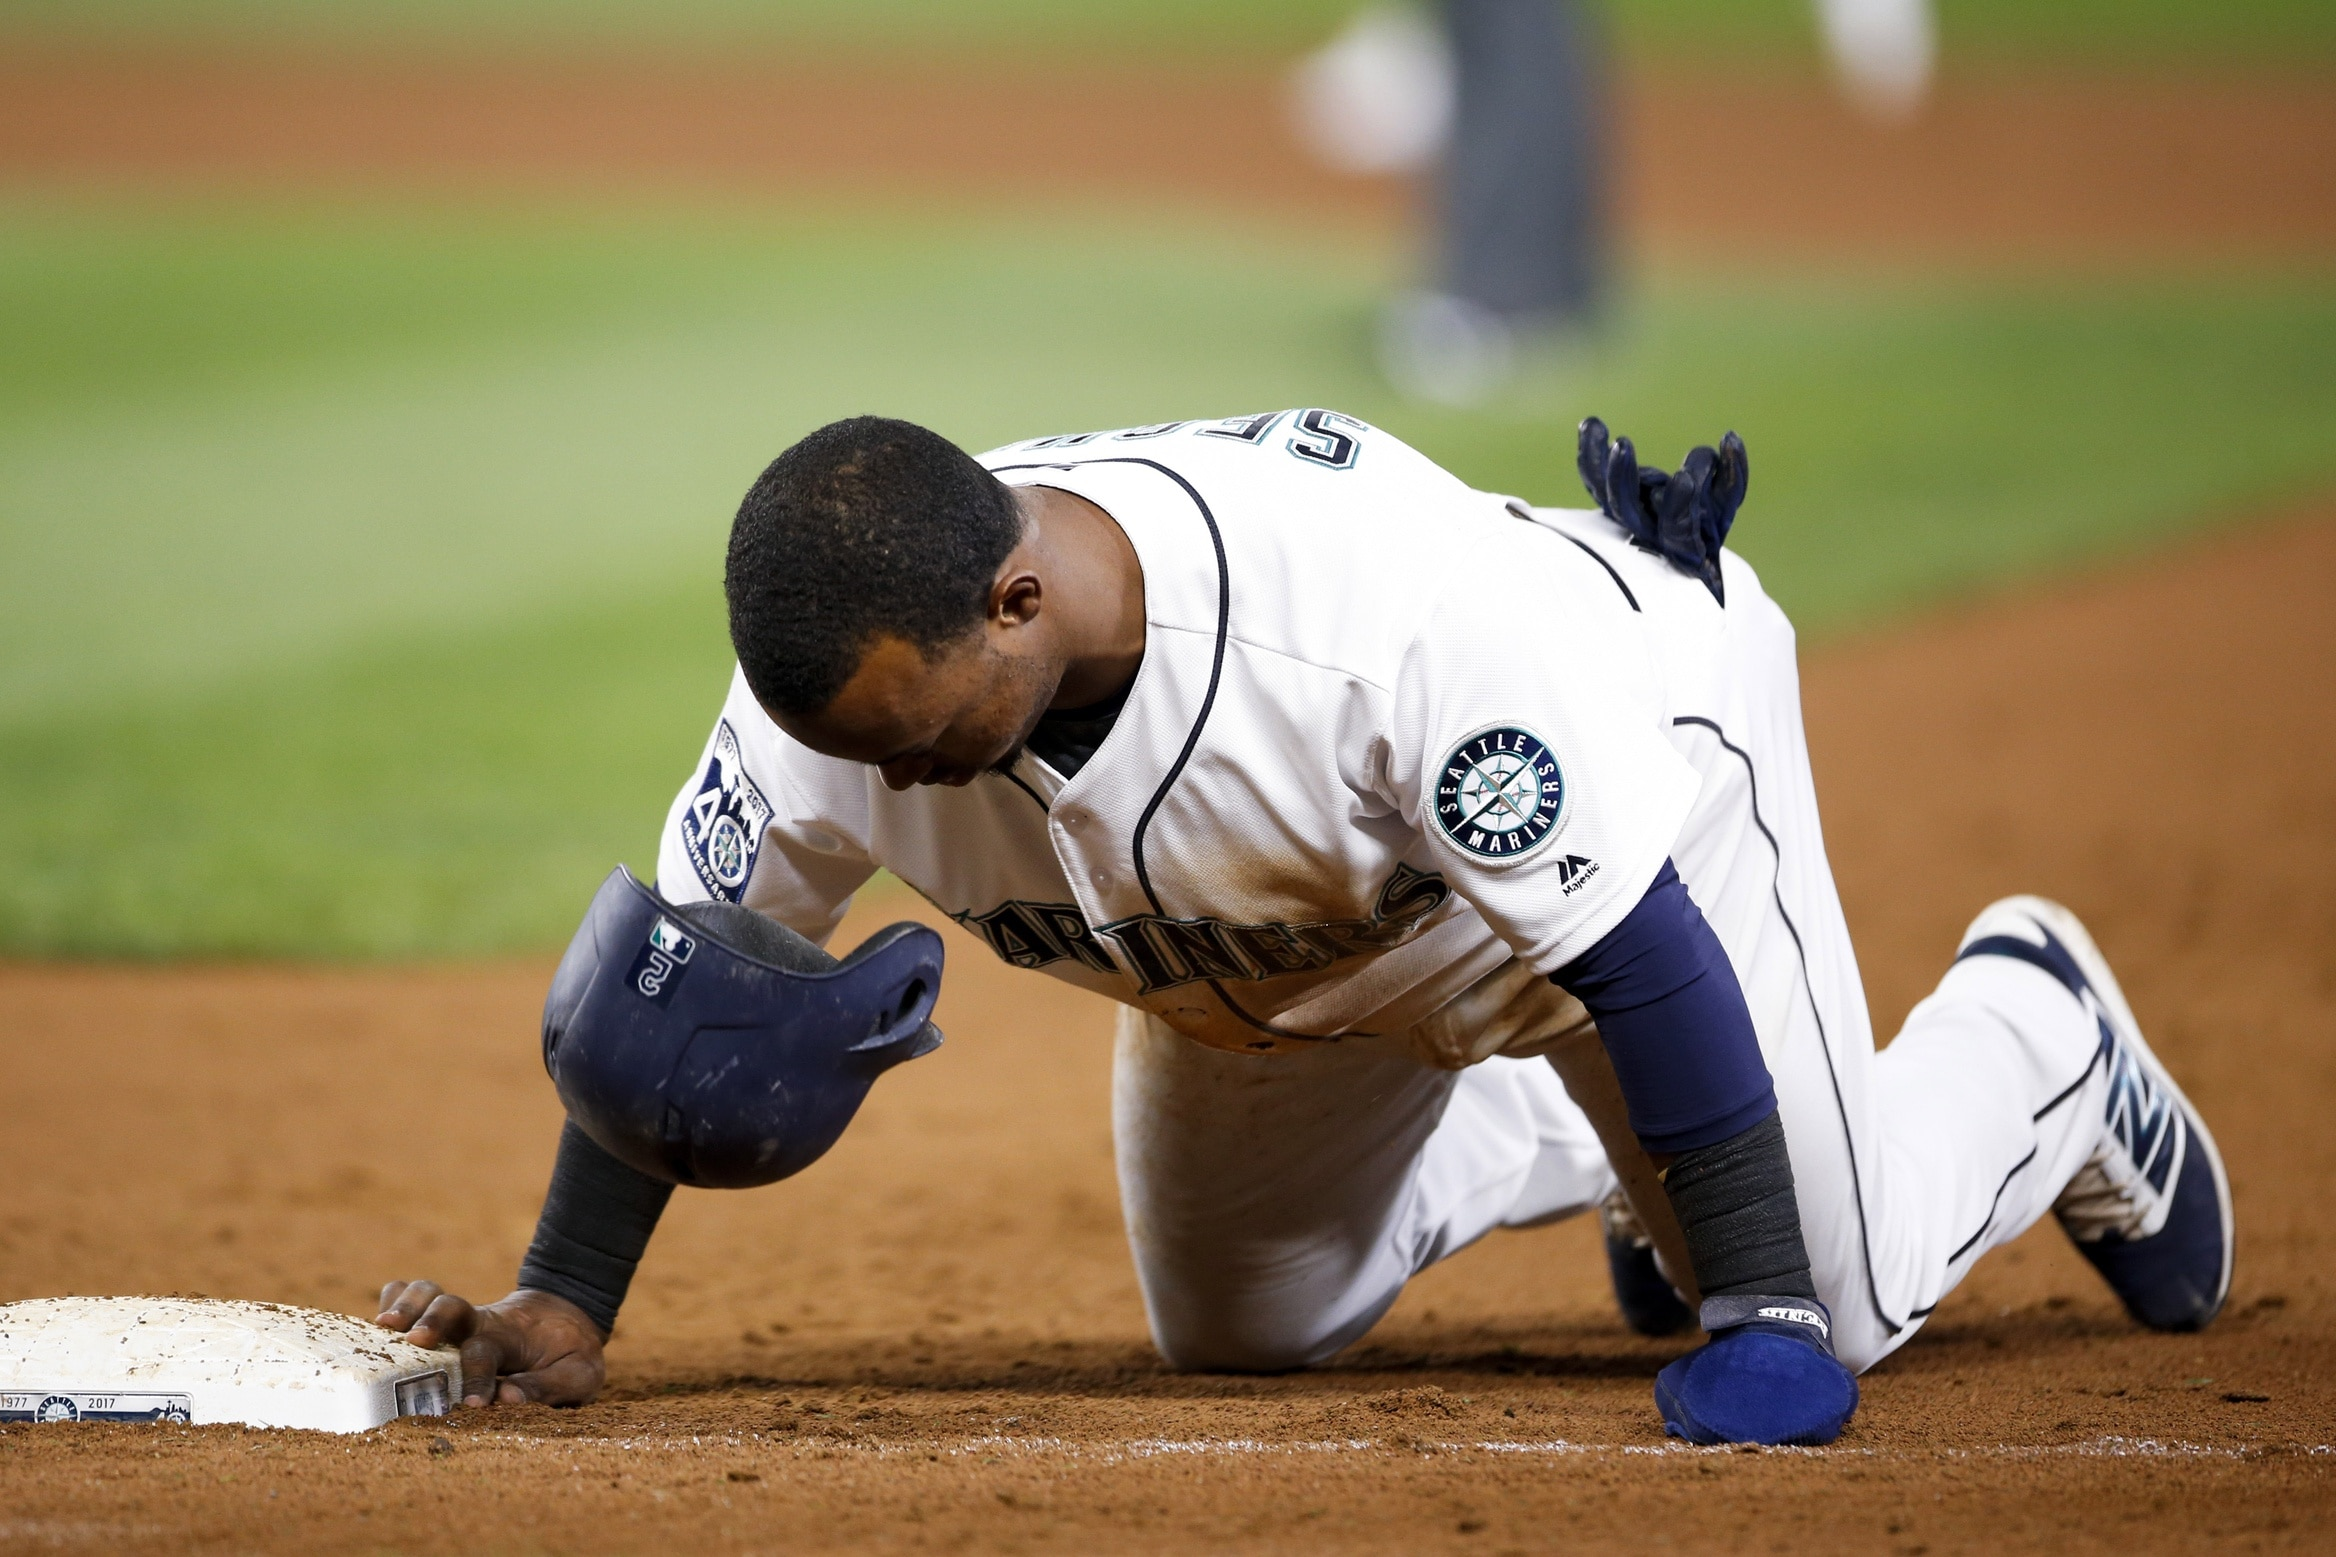 The Seattle Mariners could be without Jean Segura for the next two months